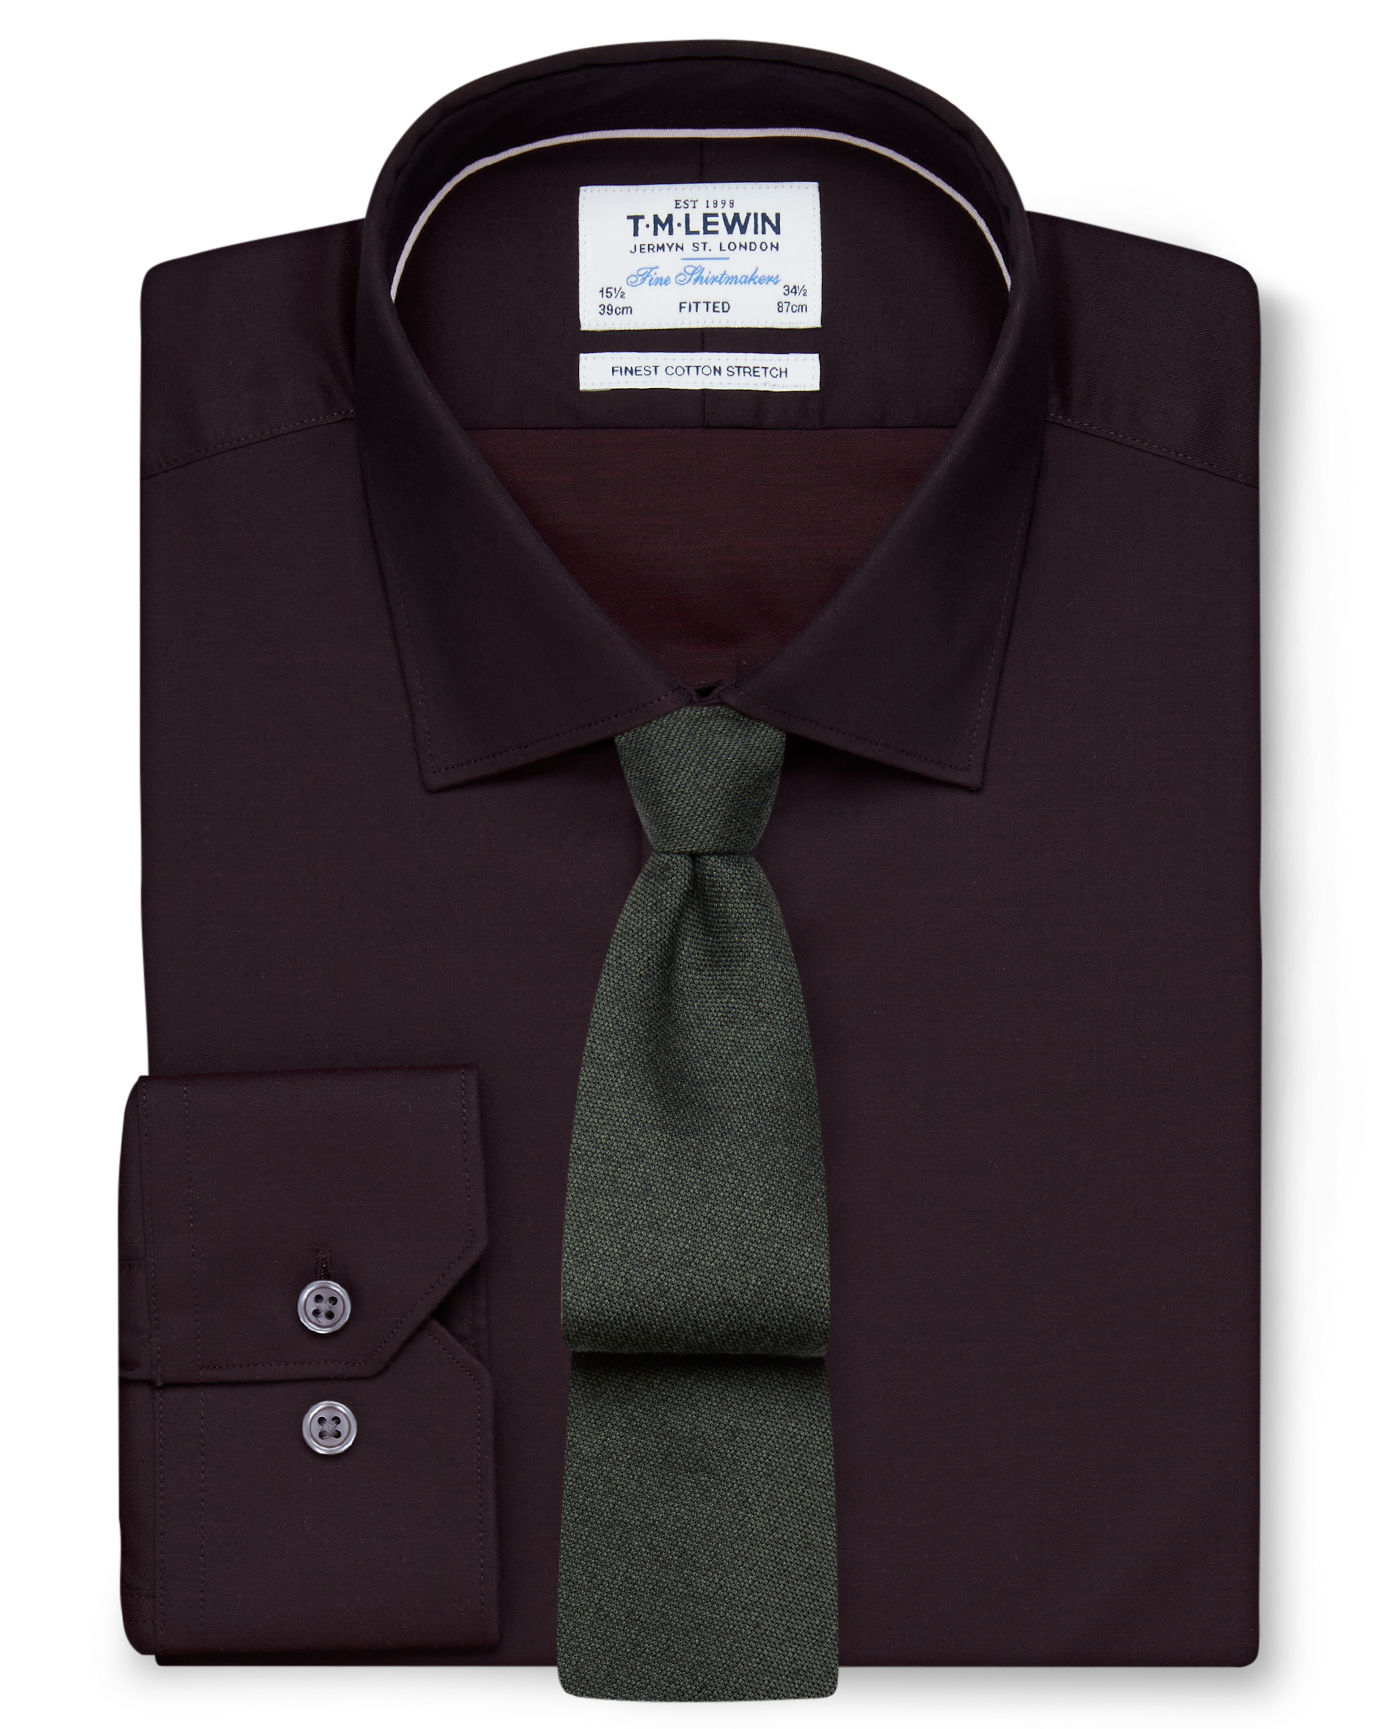 T.M.Lewin Stretch Cotton Fitted Burgundy Shirt - Button Cuff